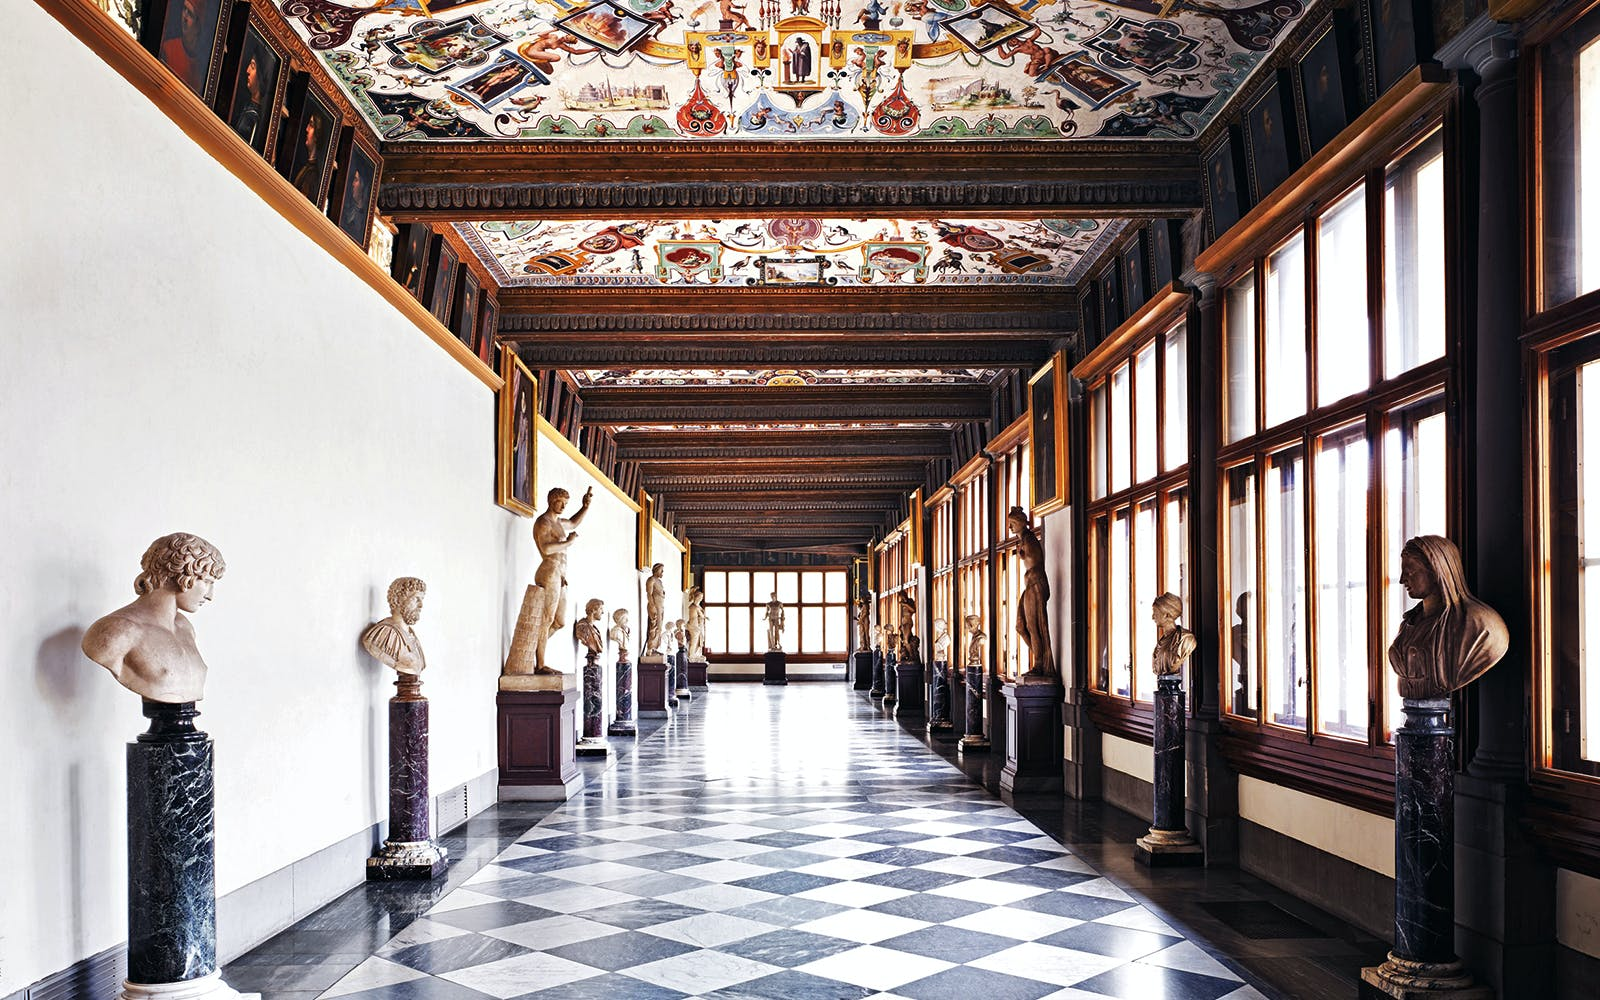 skip the line access to the uffizi gallery with audiopen-2